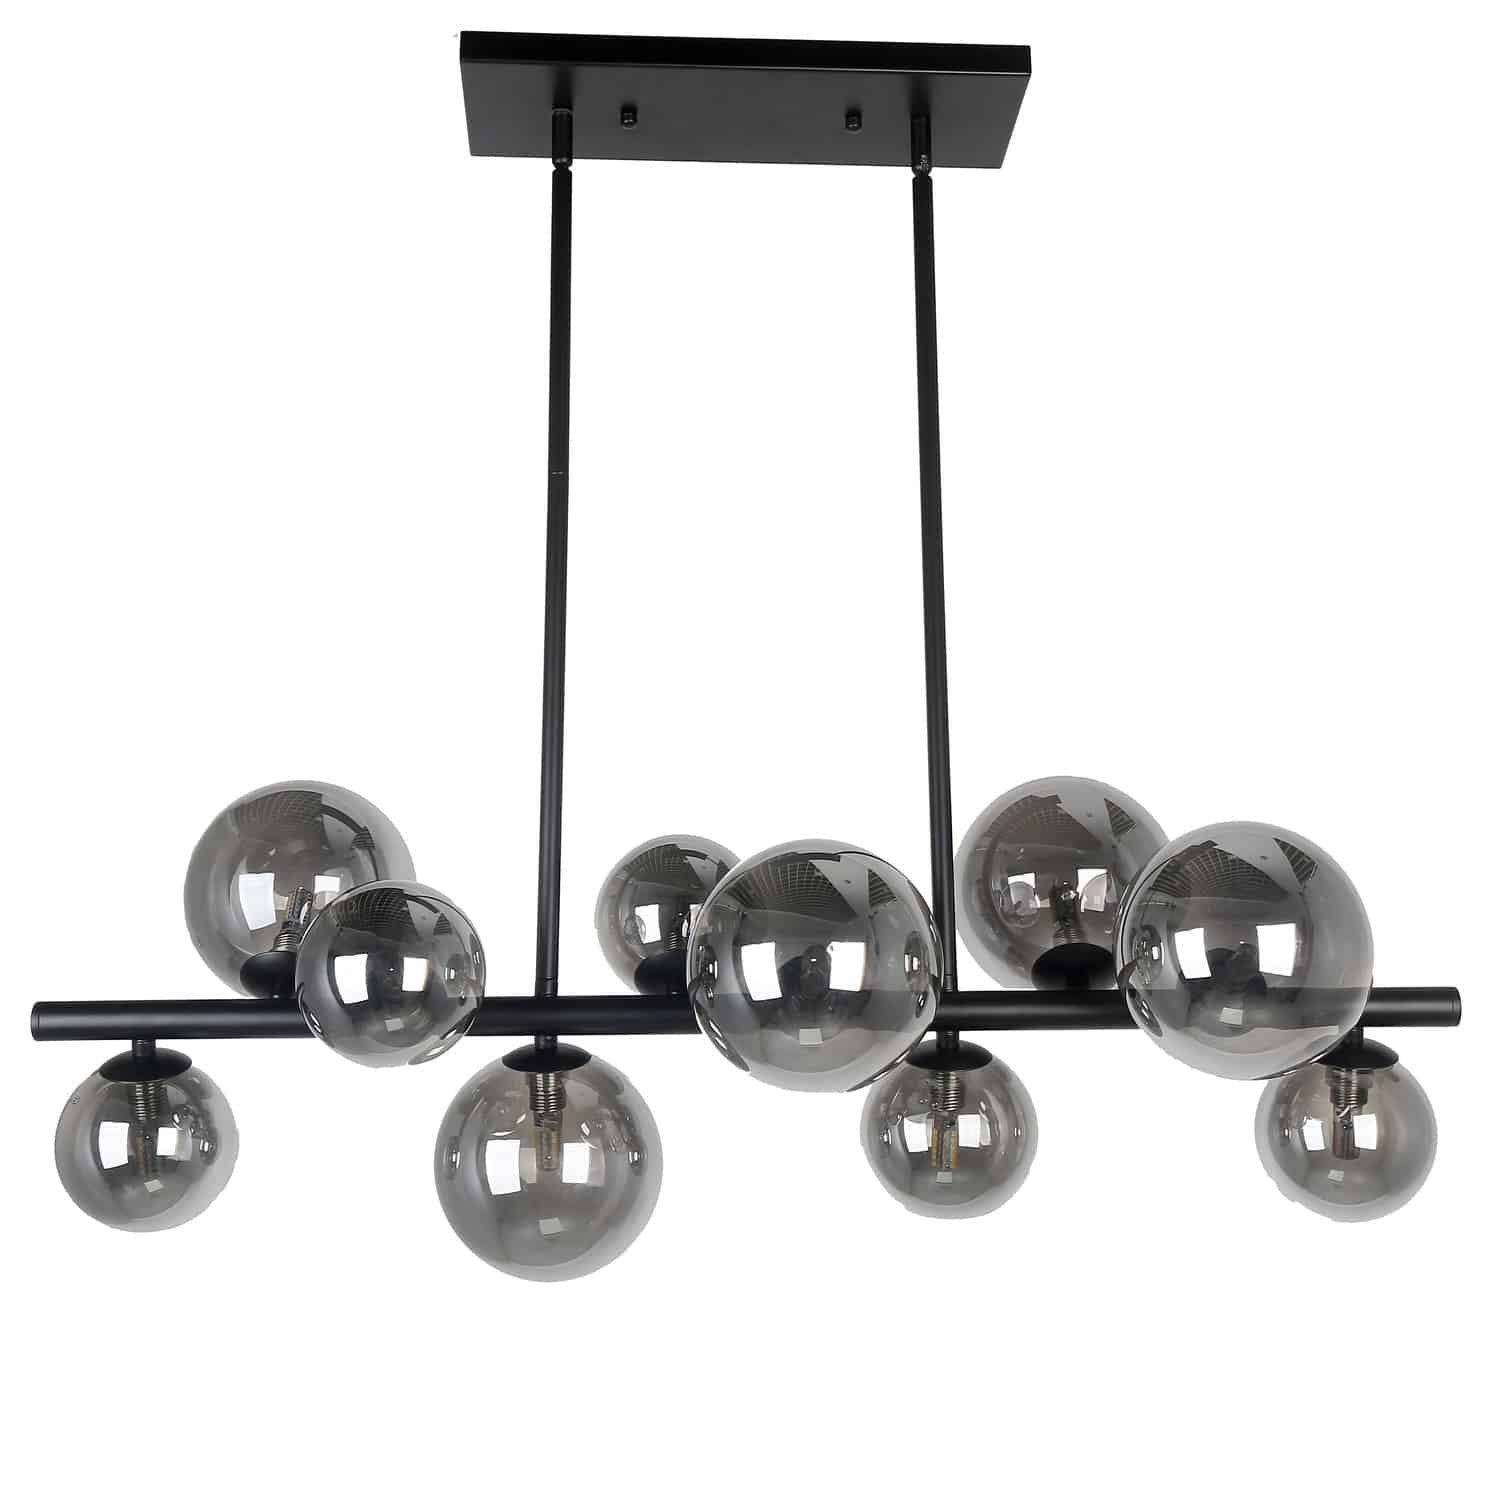 10 Light Halogen Horizontal Pendant Matte Black Finish with Smoked Glass